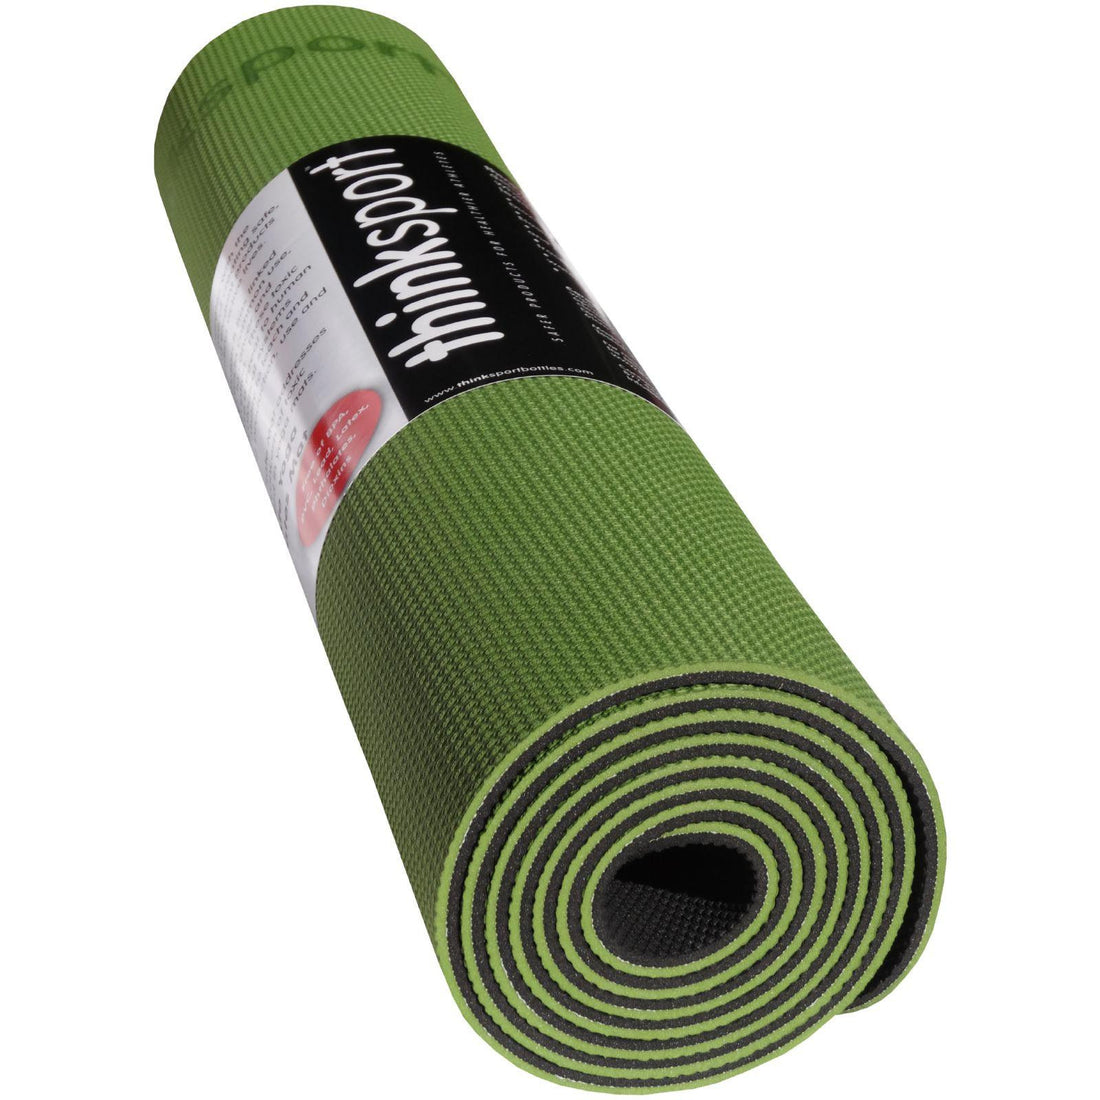 Mother Mantis: Thinksport Yoga Mat - Black-green Avocado Thinksport